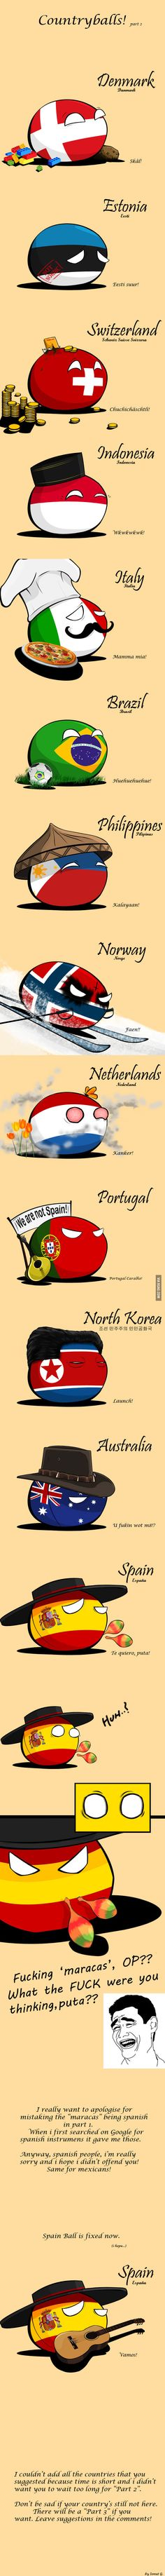 Countryballs part 2 is here